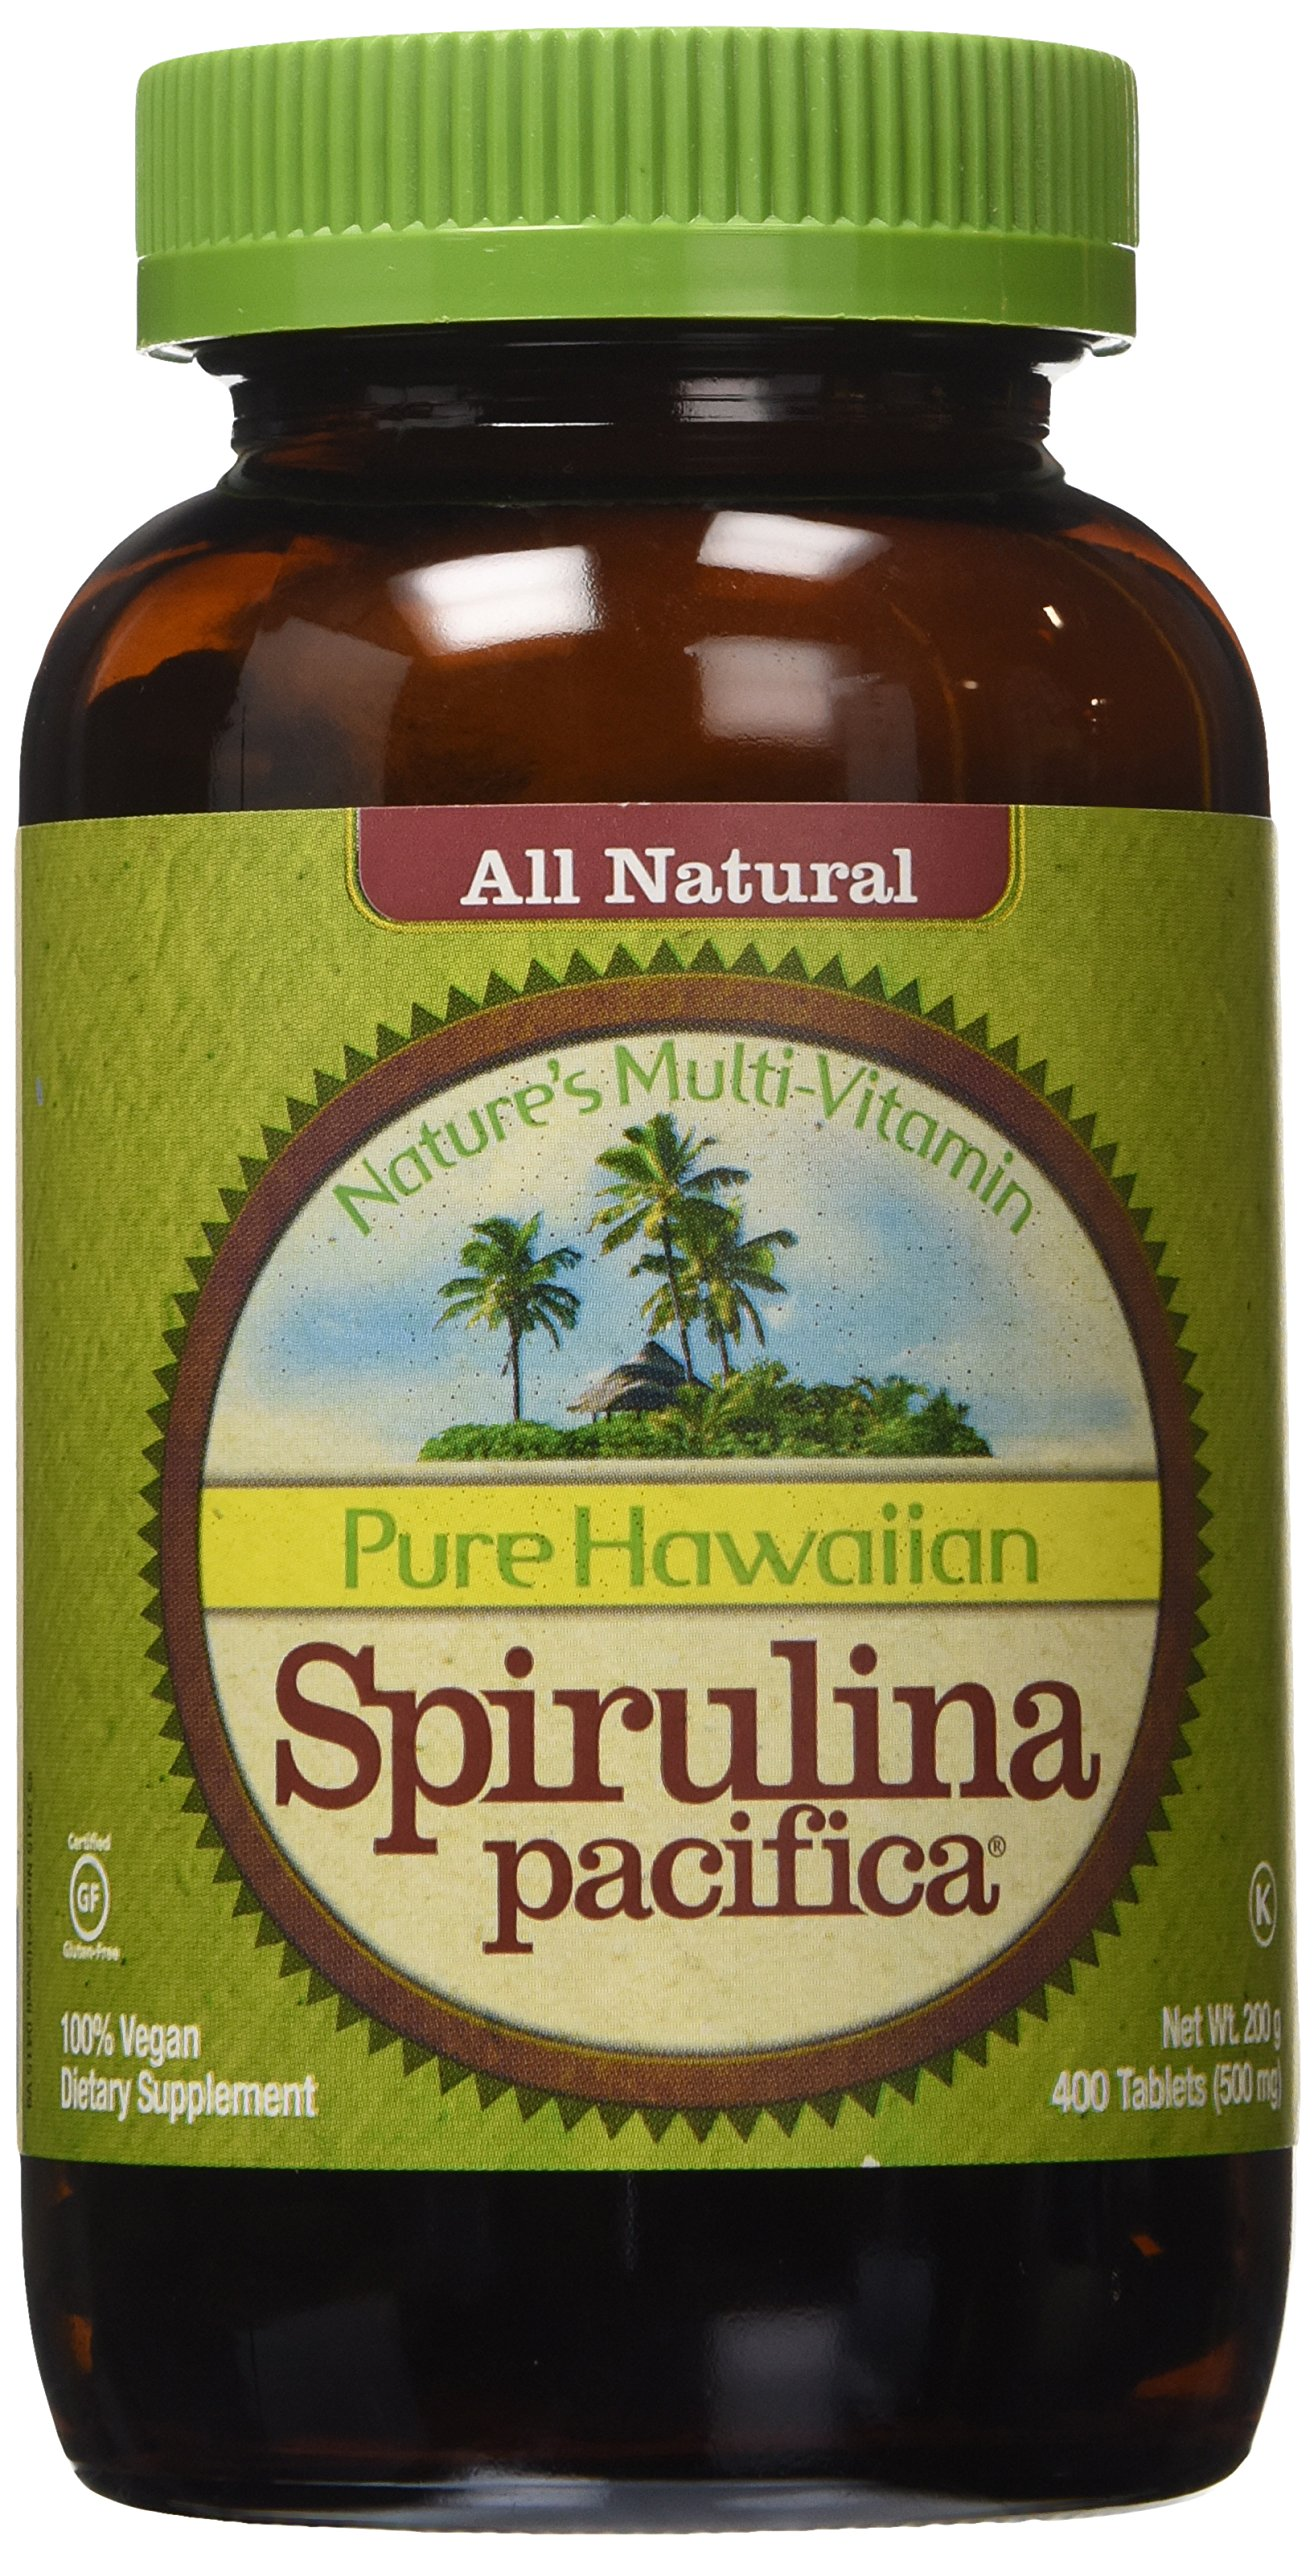 Nutrex Hawaii Pure Hawaiian Spirulina Pacifica -- 500 mg - 400 Tablets (Pack of 2)